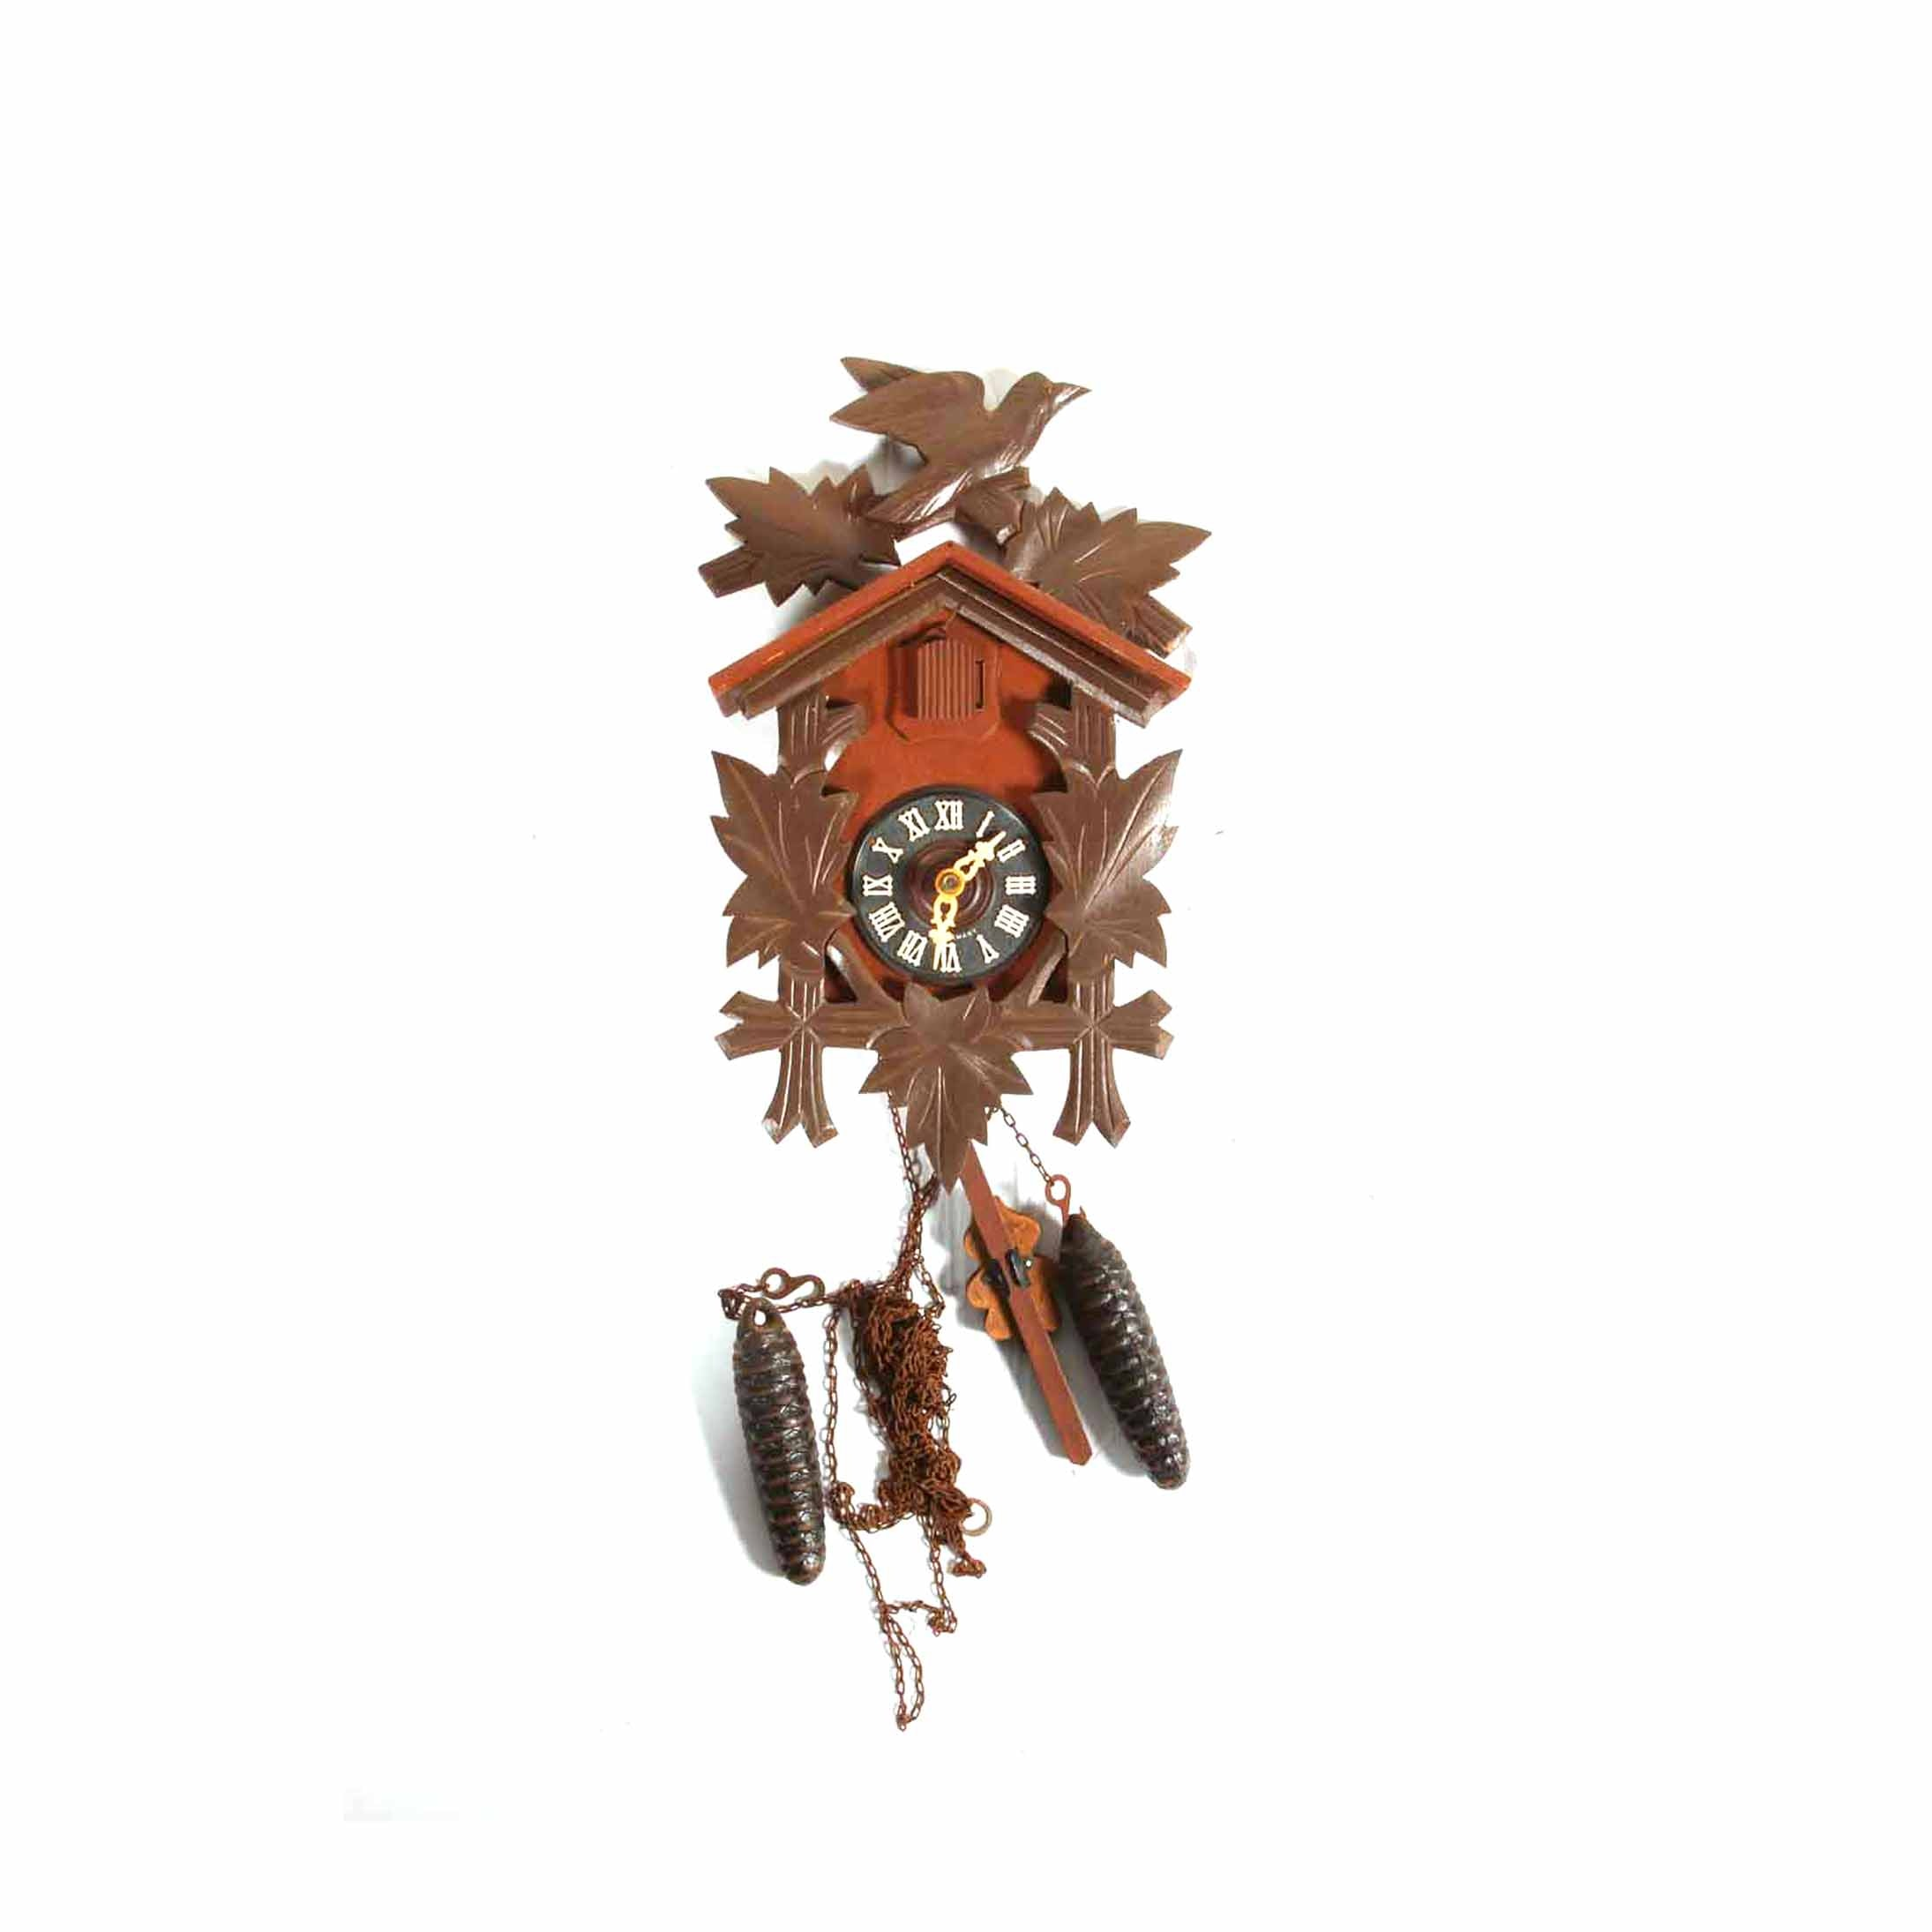 Antique Wall Clocks Floor Clocks And Mantel Clocks